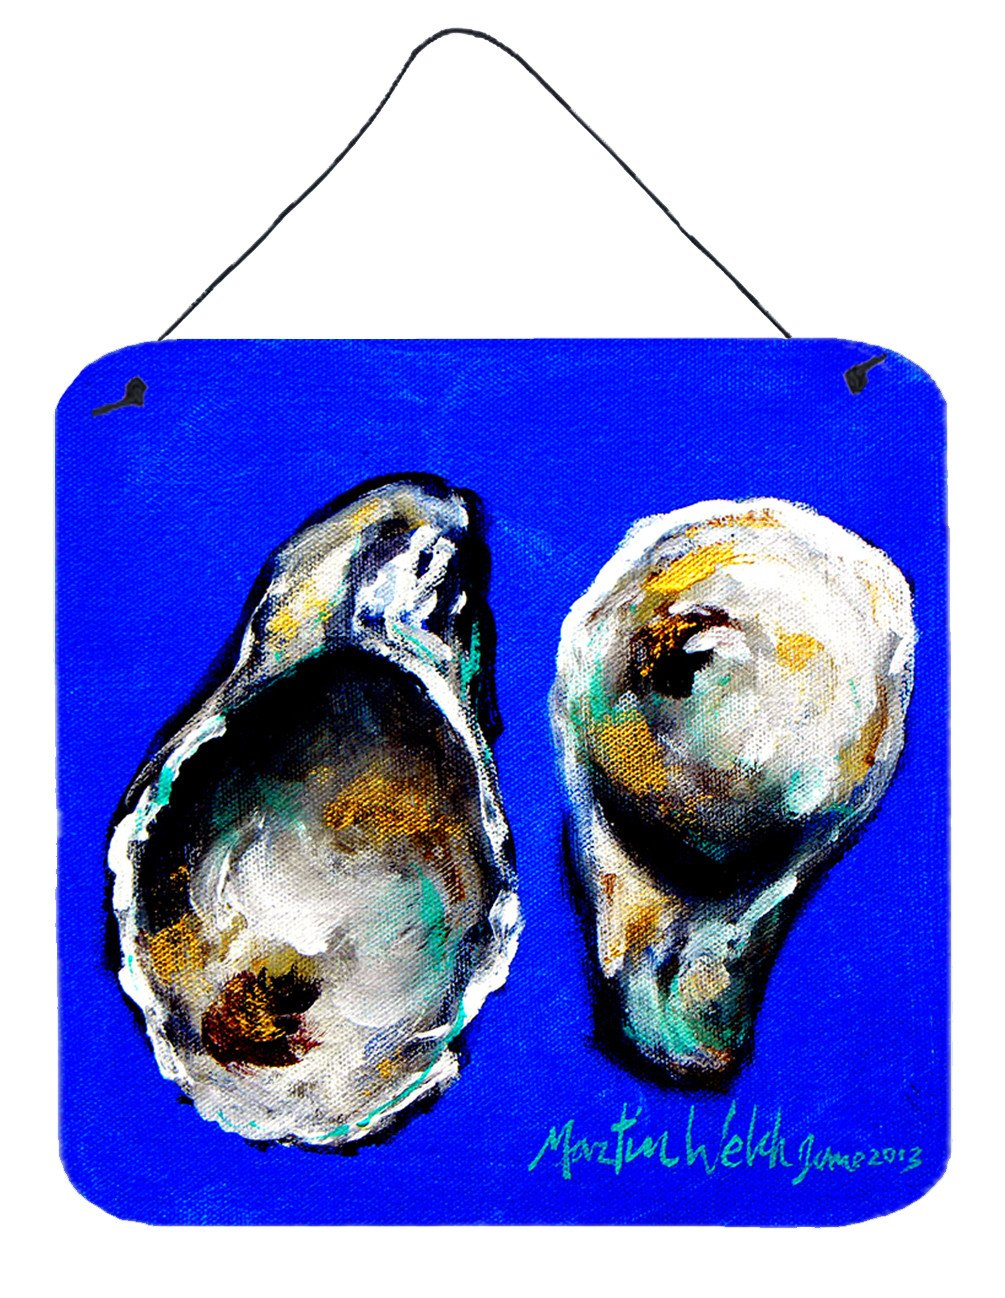 Buy this Oyster Up and Down Aluminium Metal Wall or Door Hanging Prints